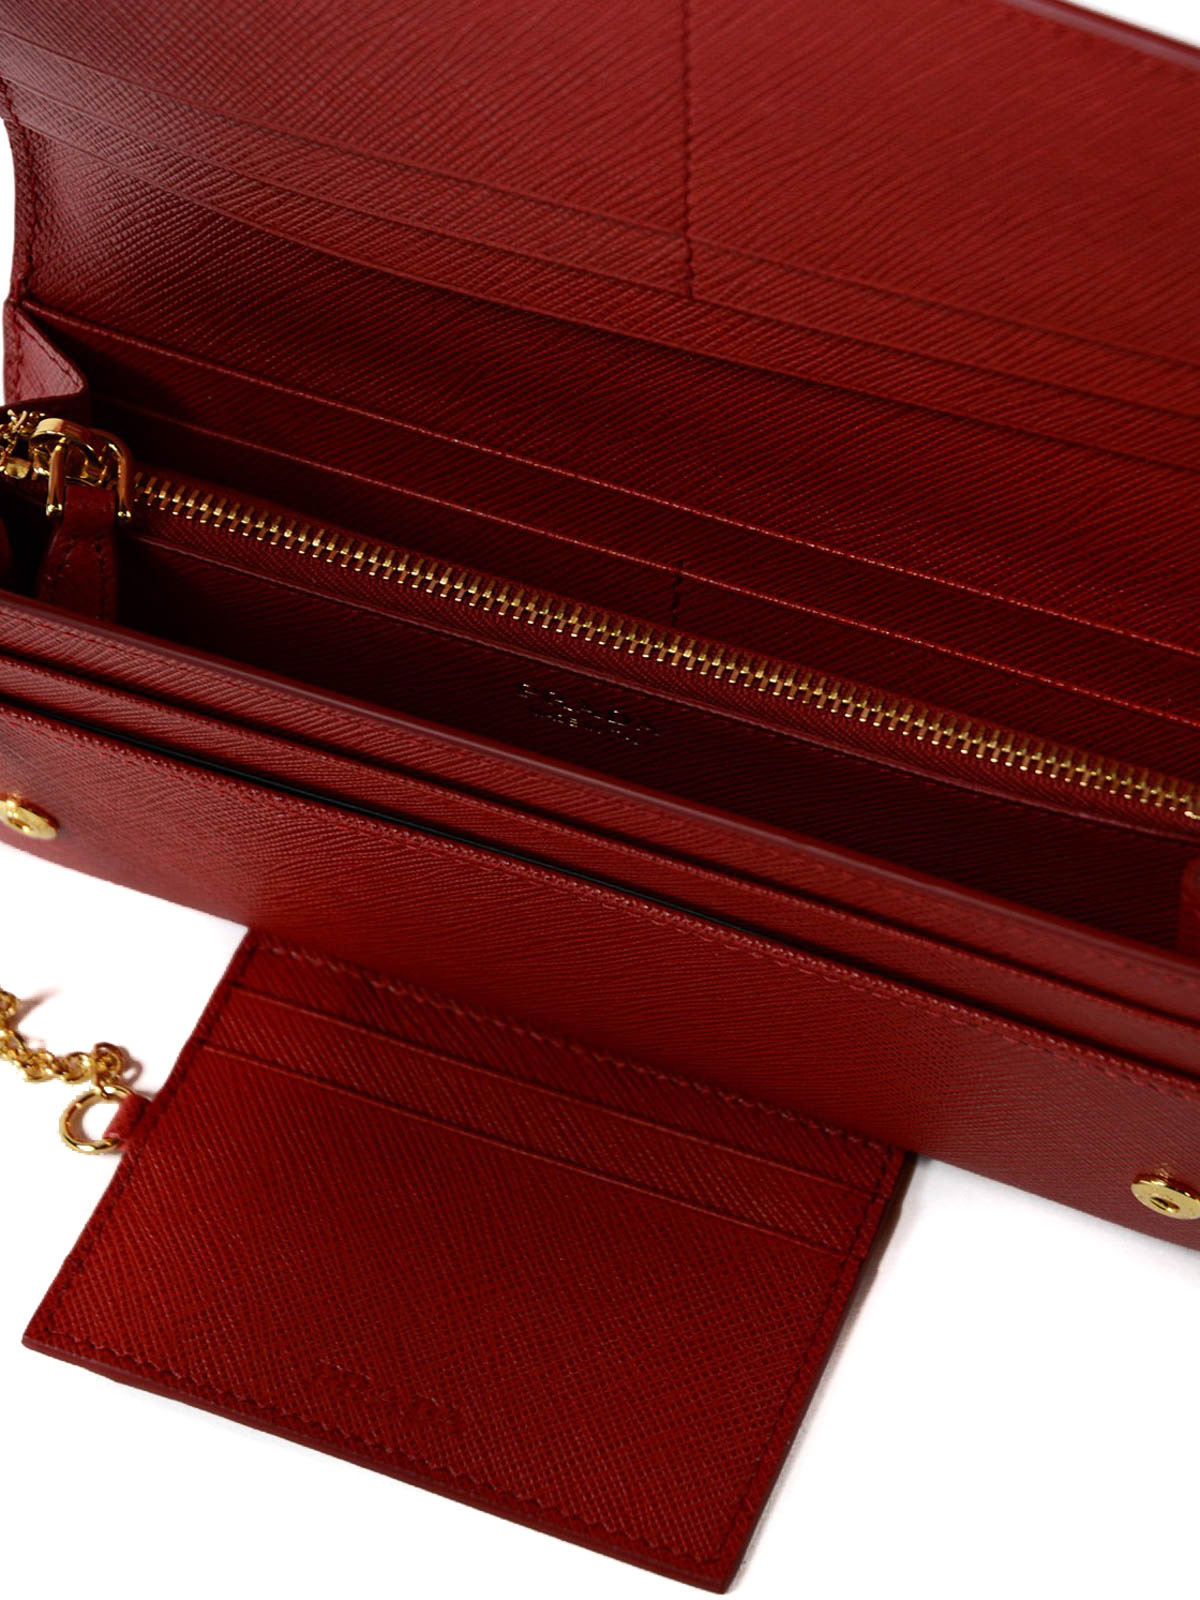 7a48cd2b9486 PRADA buy online Red saffiano continental wallet. PRADA: wallets & purses  ...